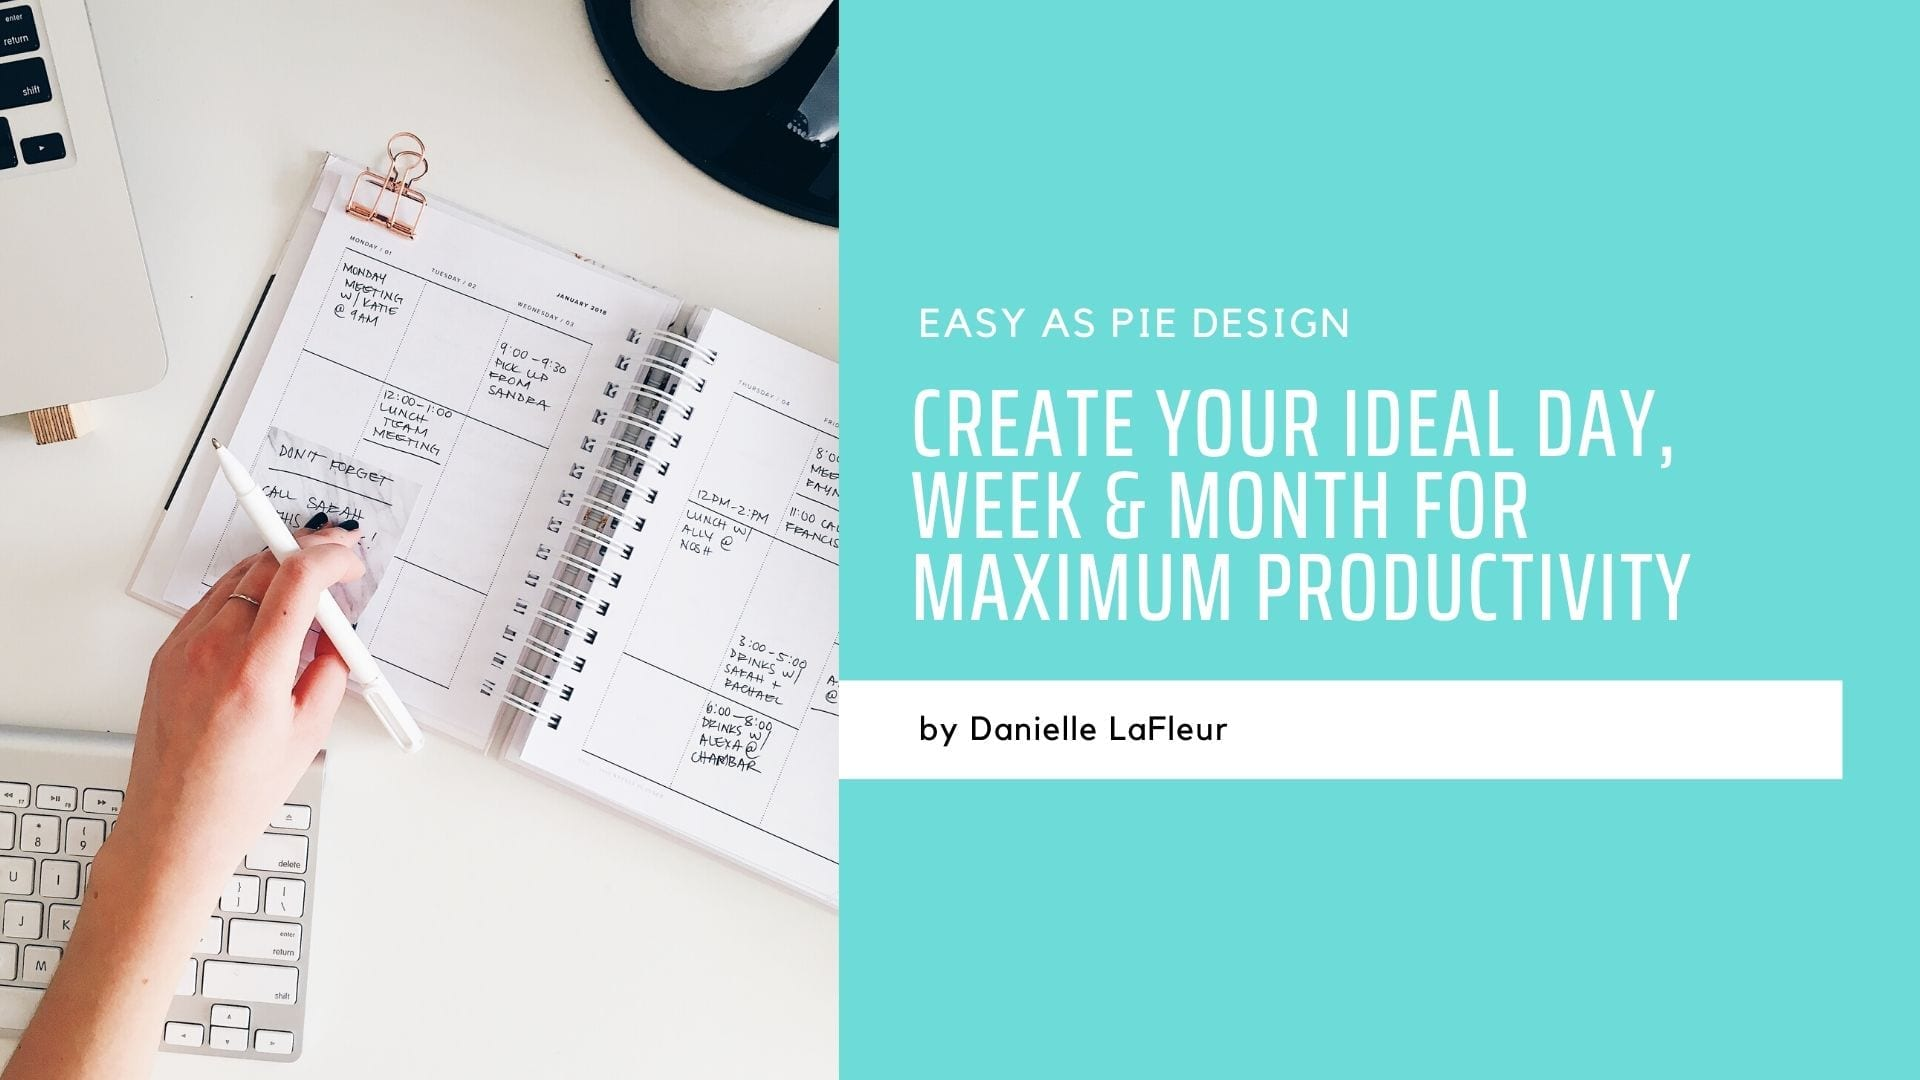 Create Your Ideal Day, Week & Month for Maximum Productivity